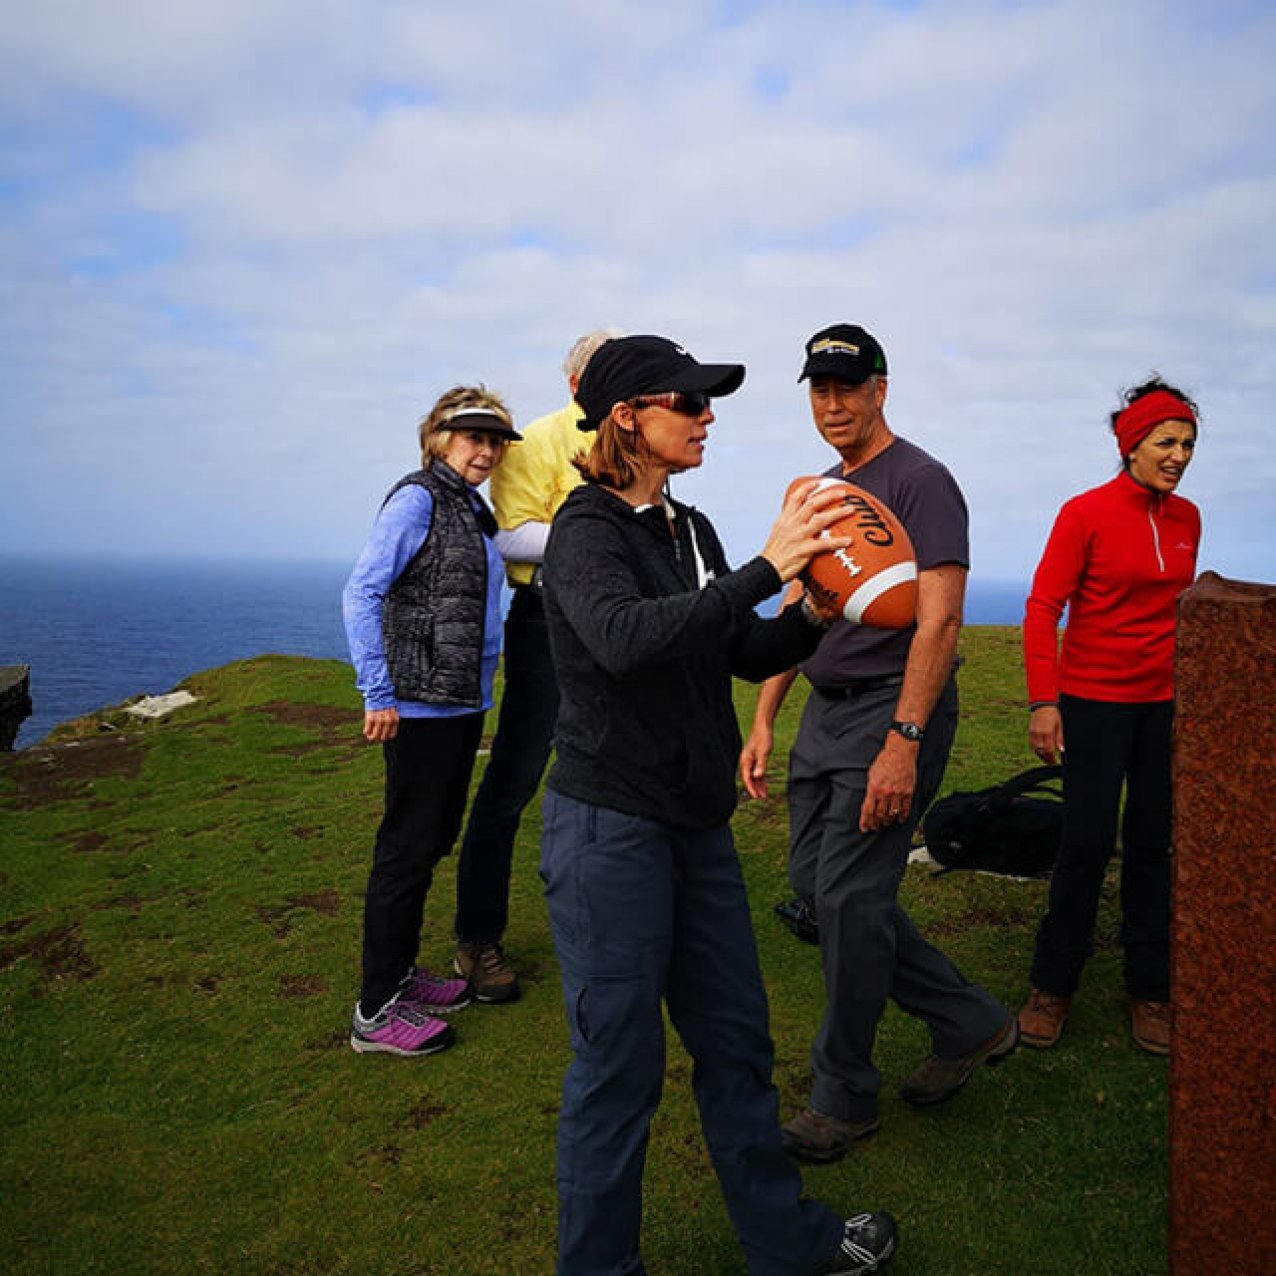 A group of guests on Bray Head with a woman at the front getting ready to throw an American football